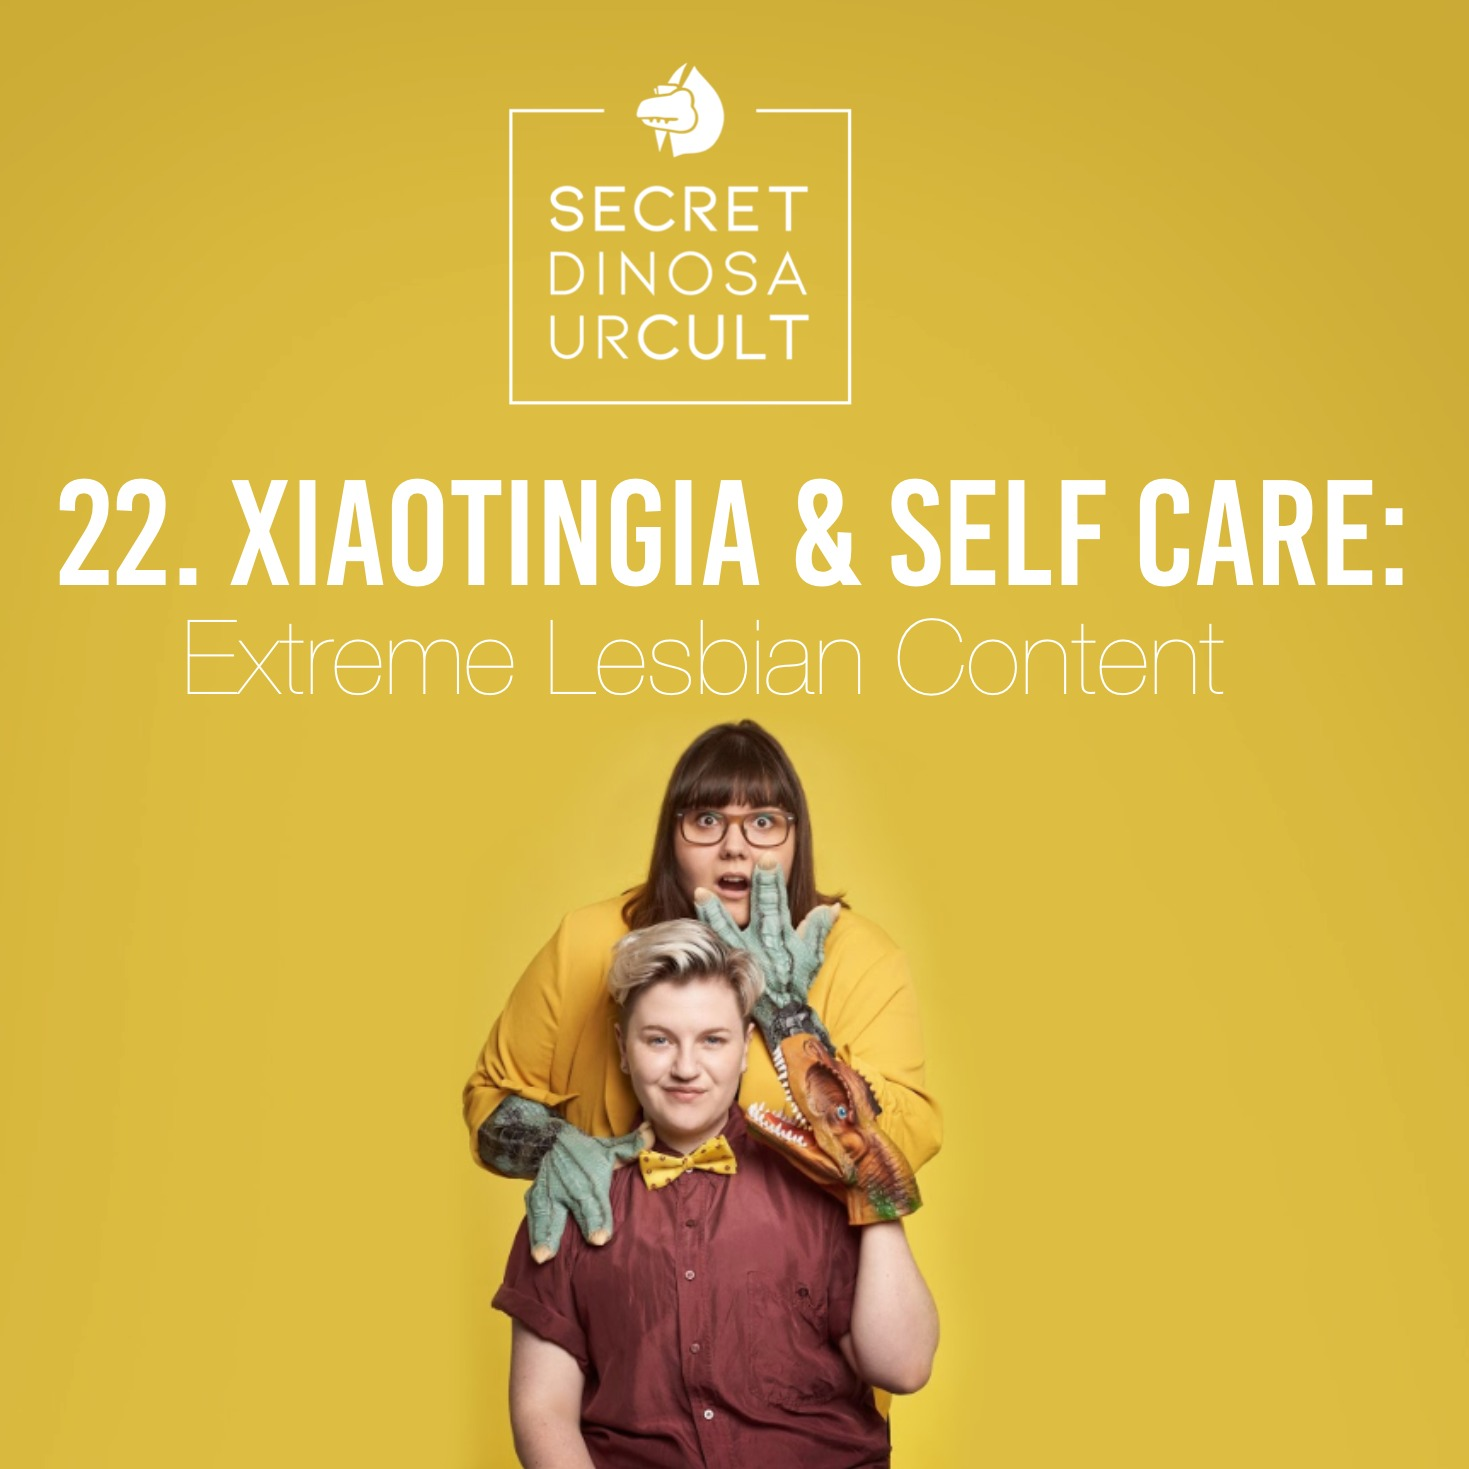 22. Xiaotingia & Self Care: Extreme Lesbian Content